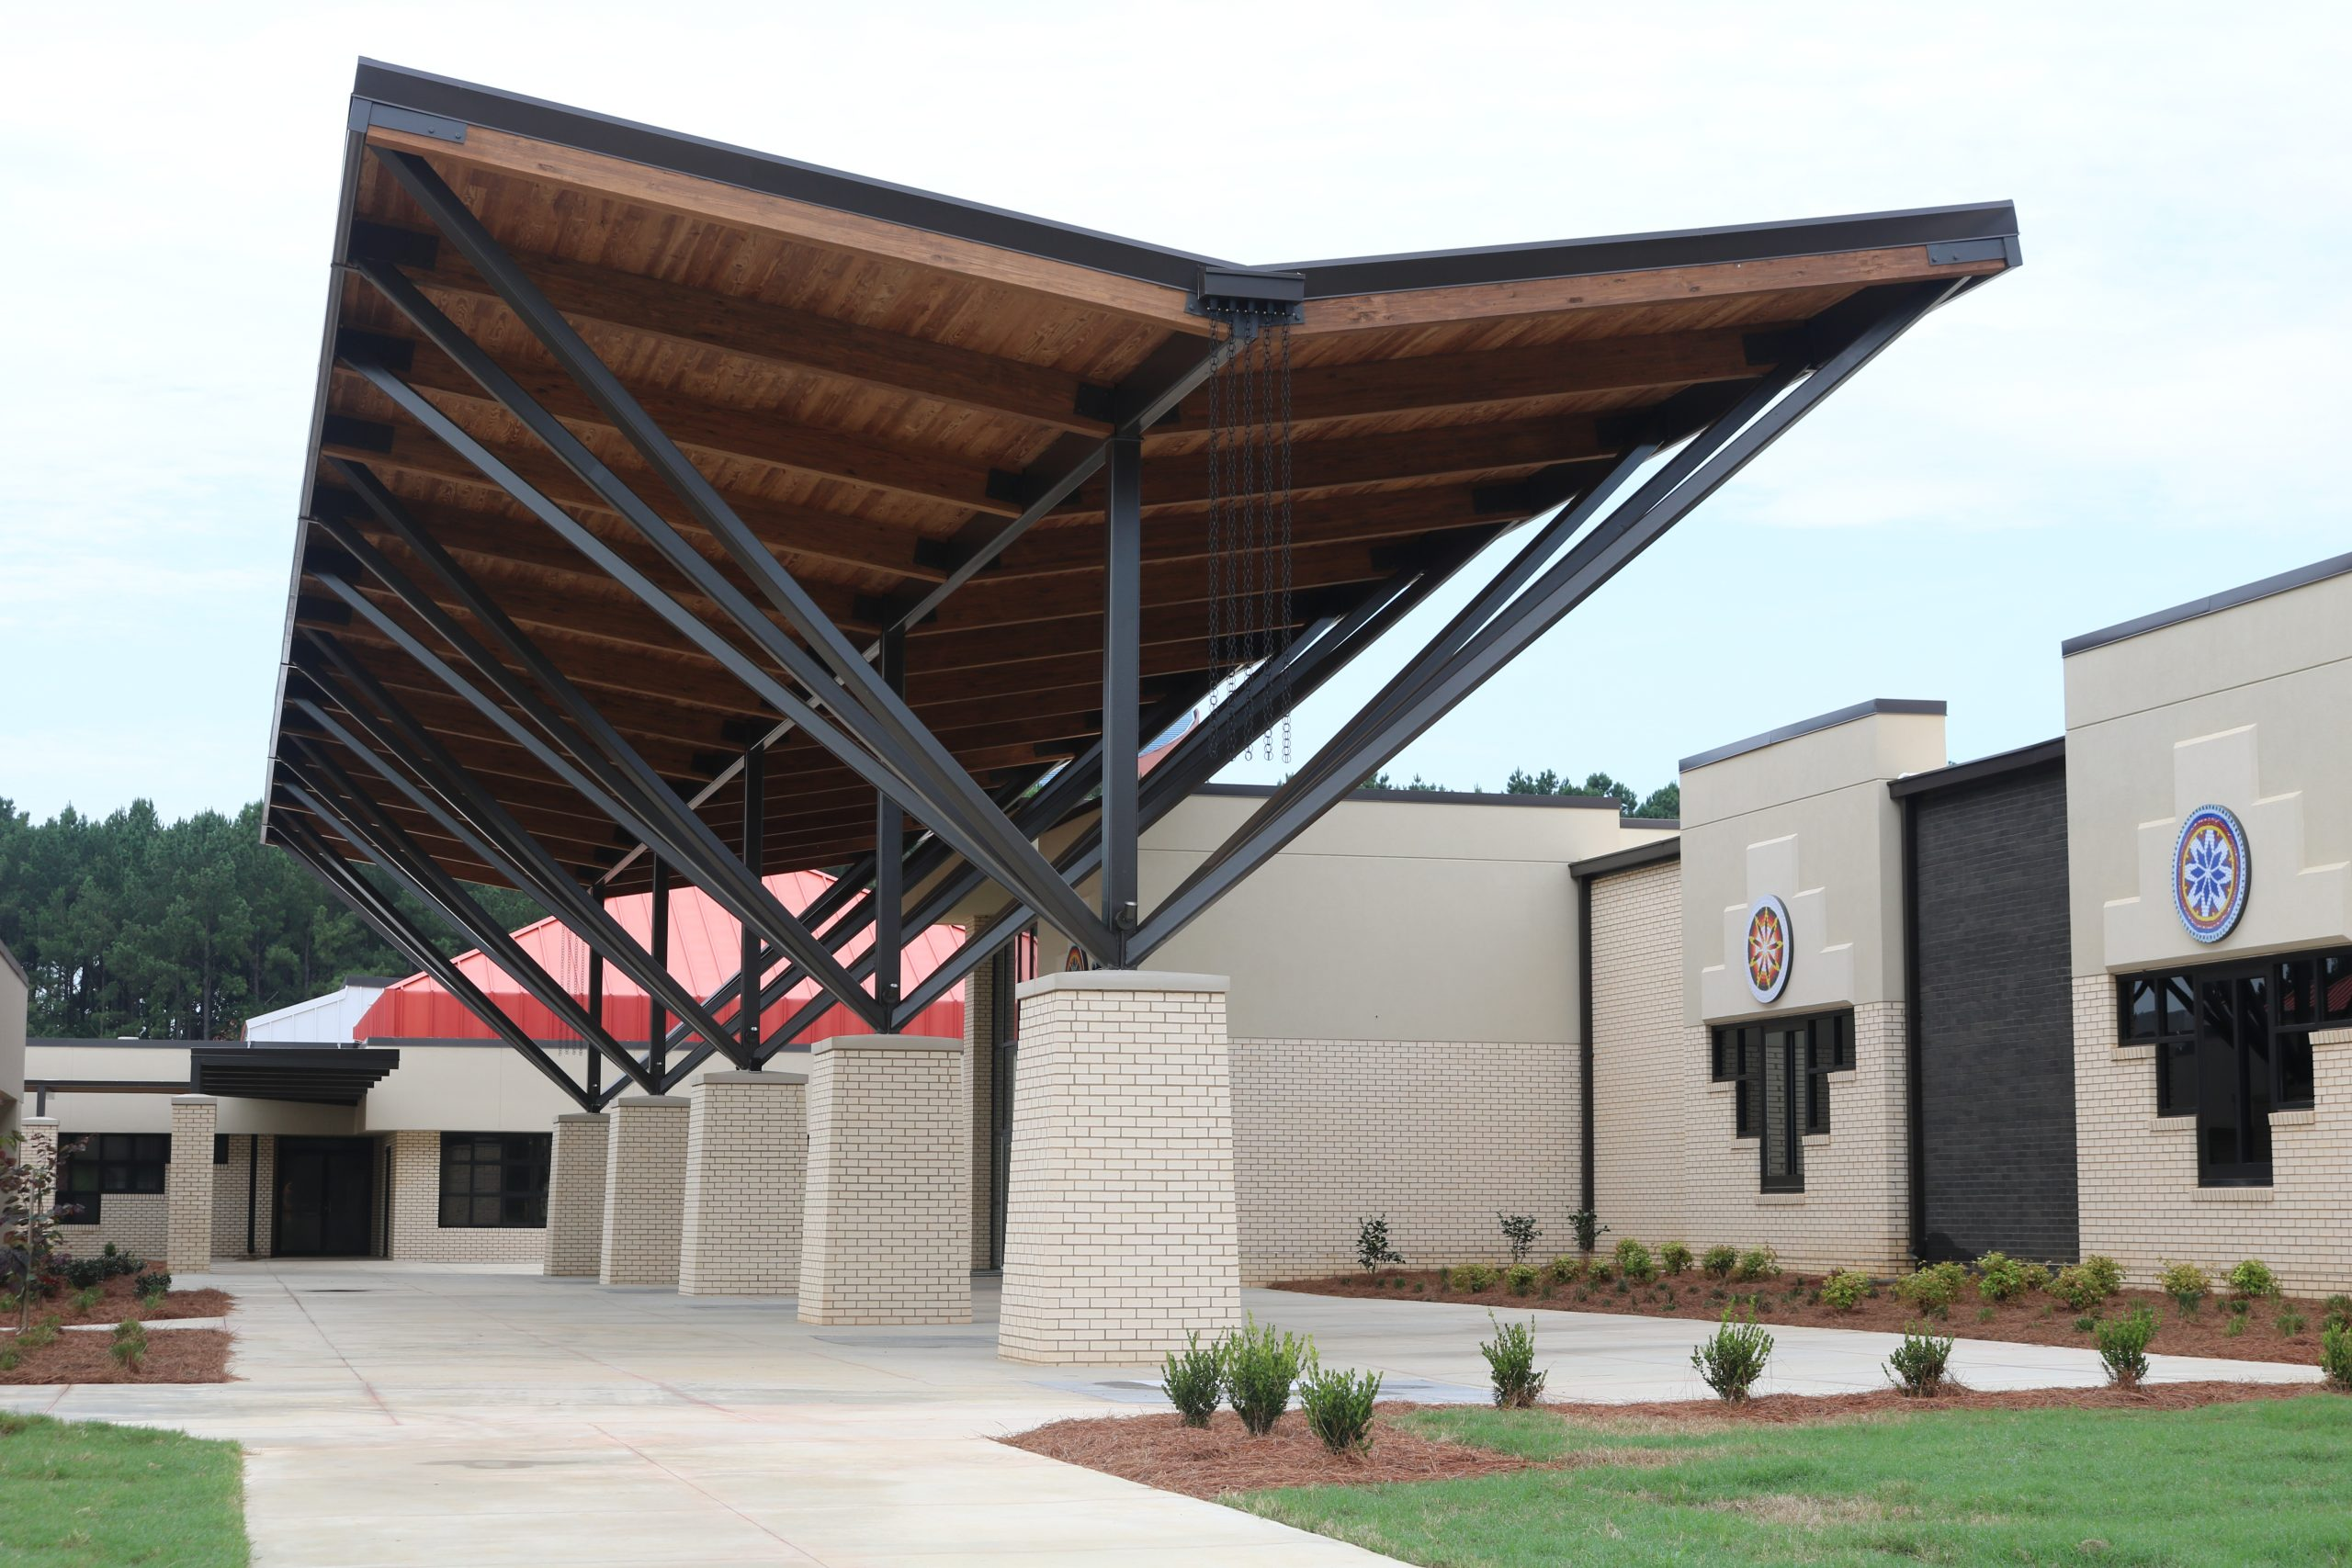 Pearl River Elementary